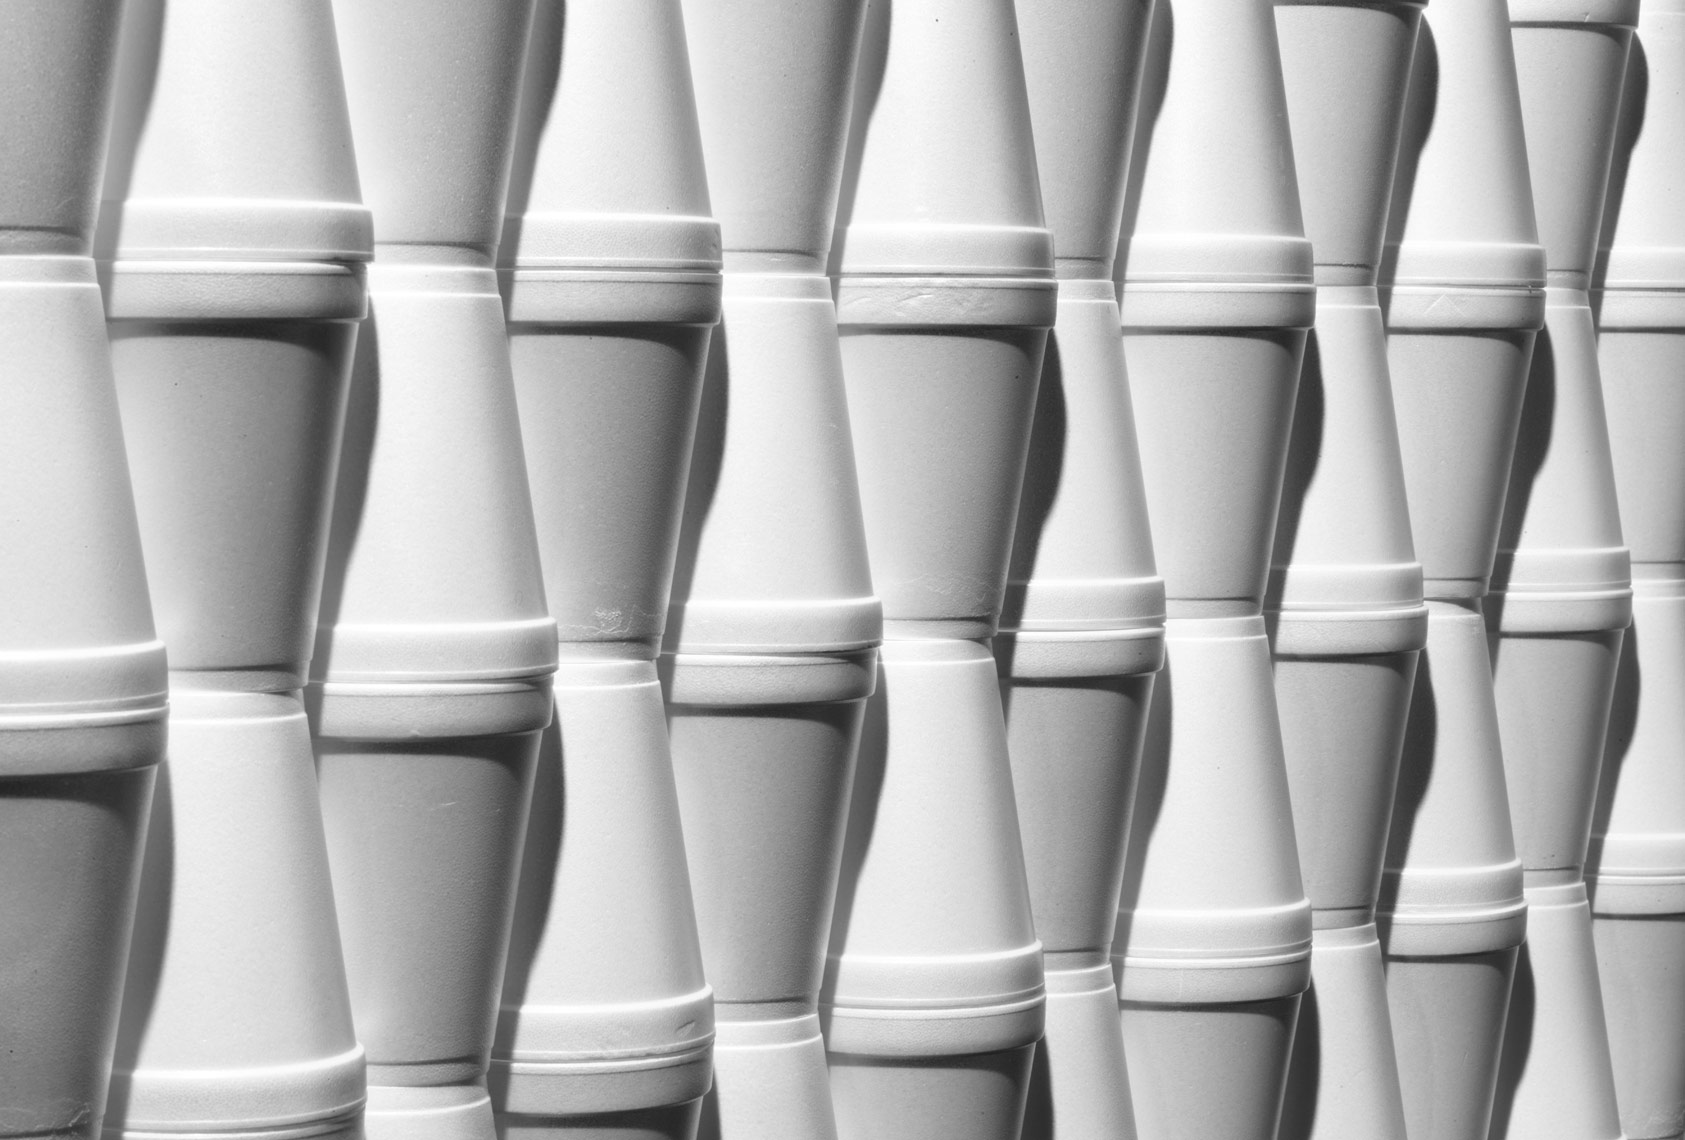 white and black styrofoam cups organized neatly